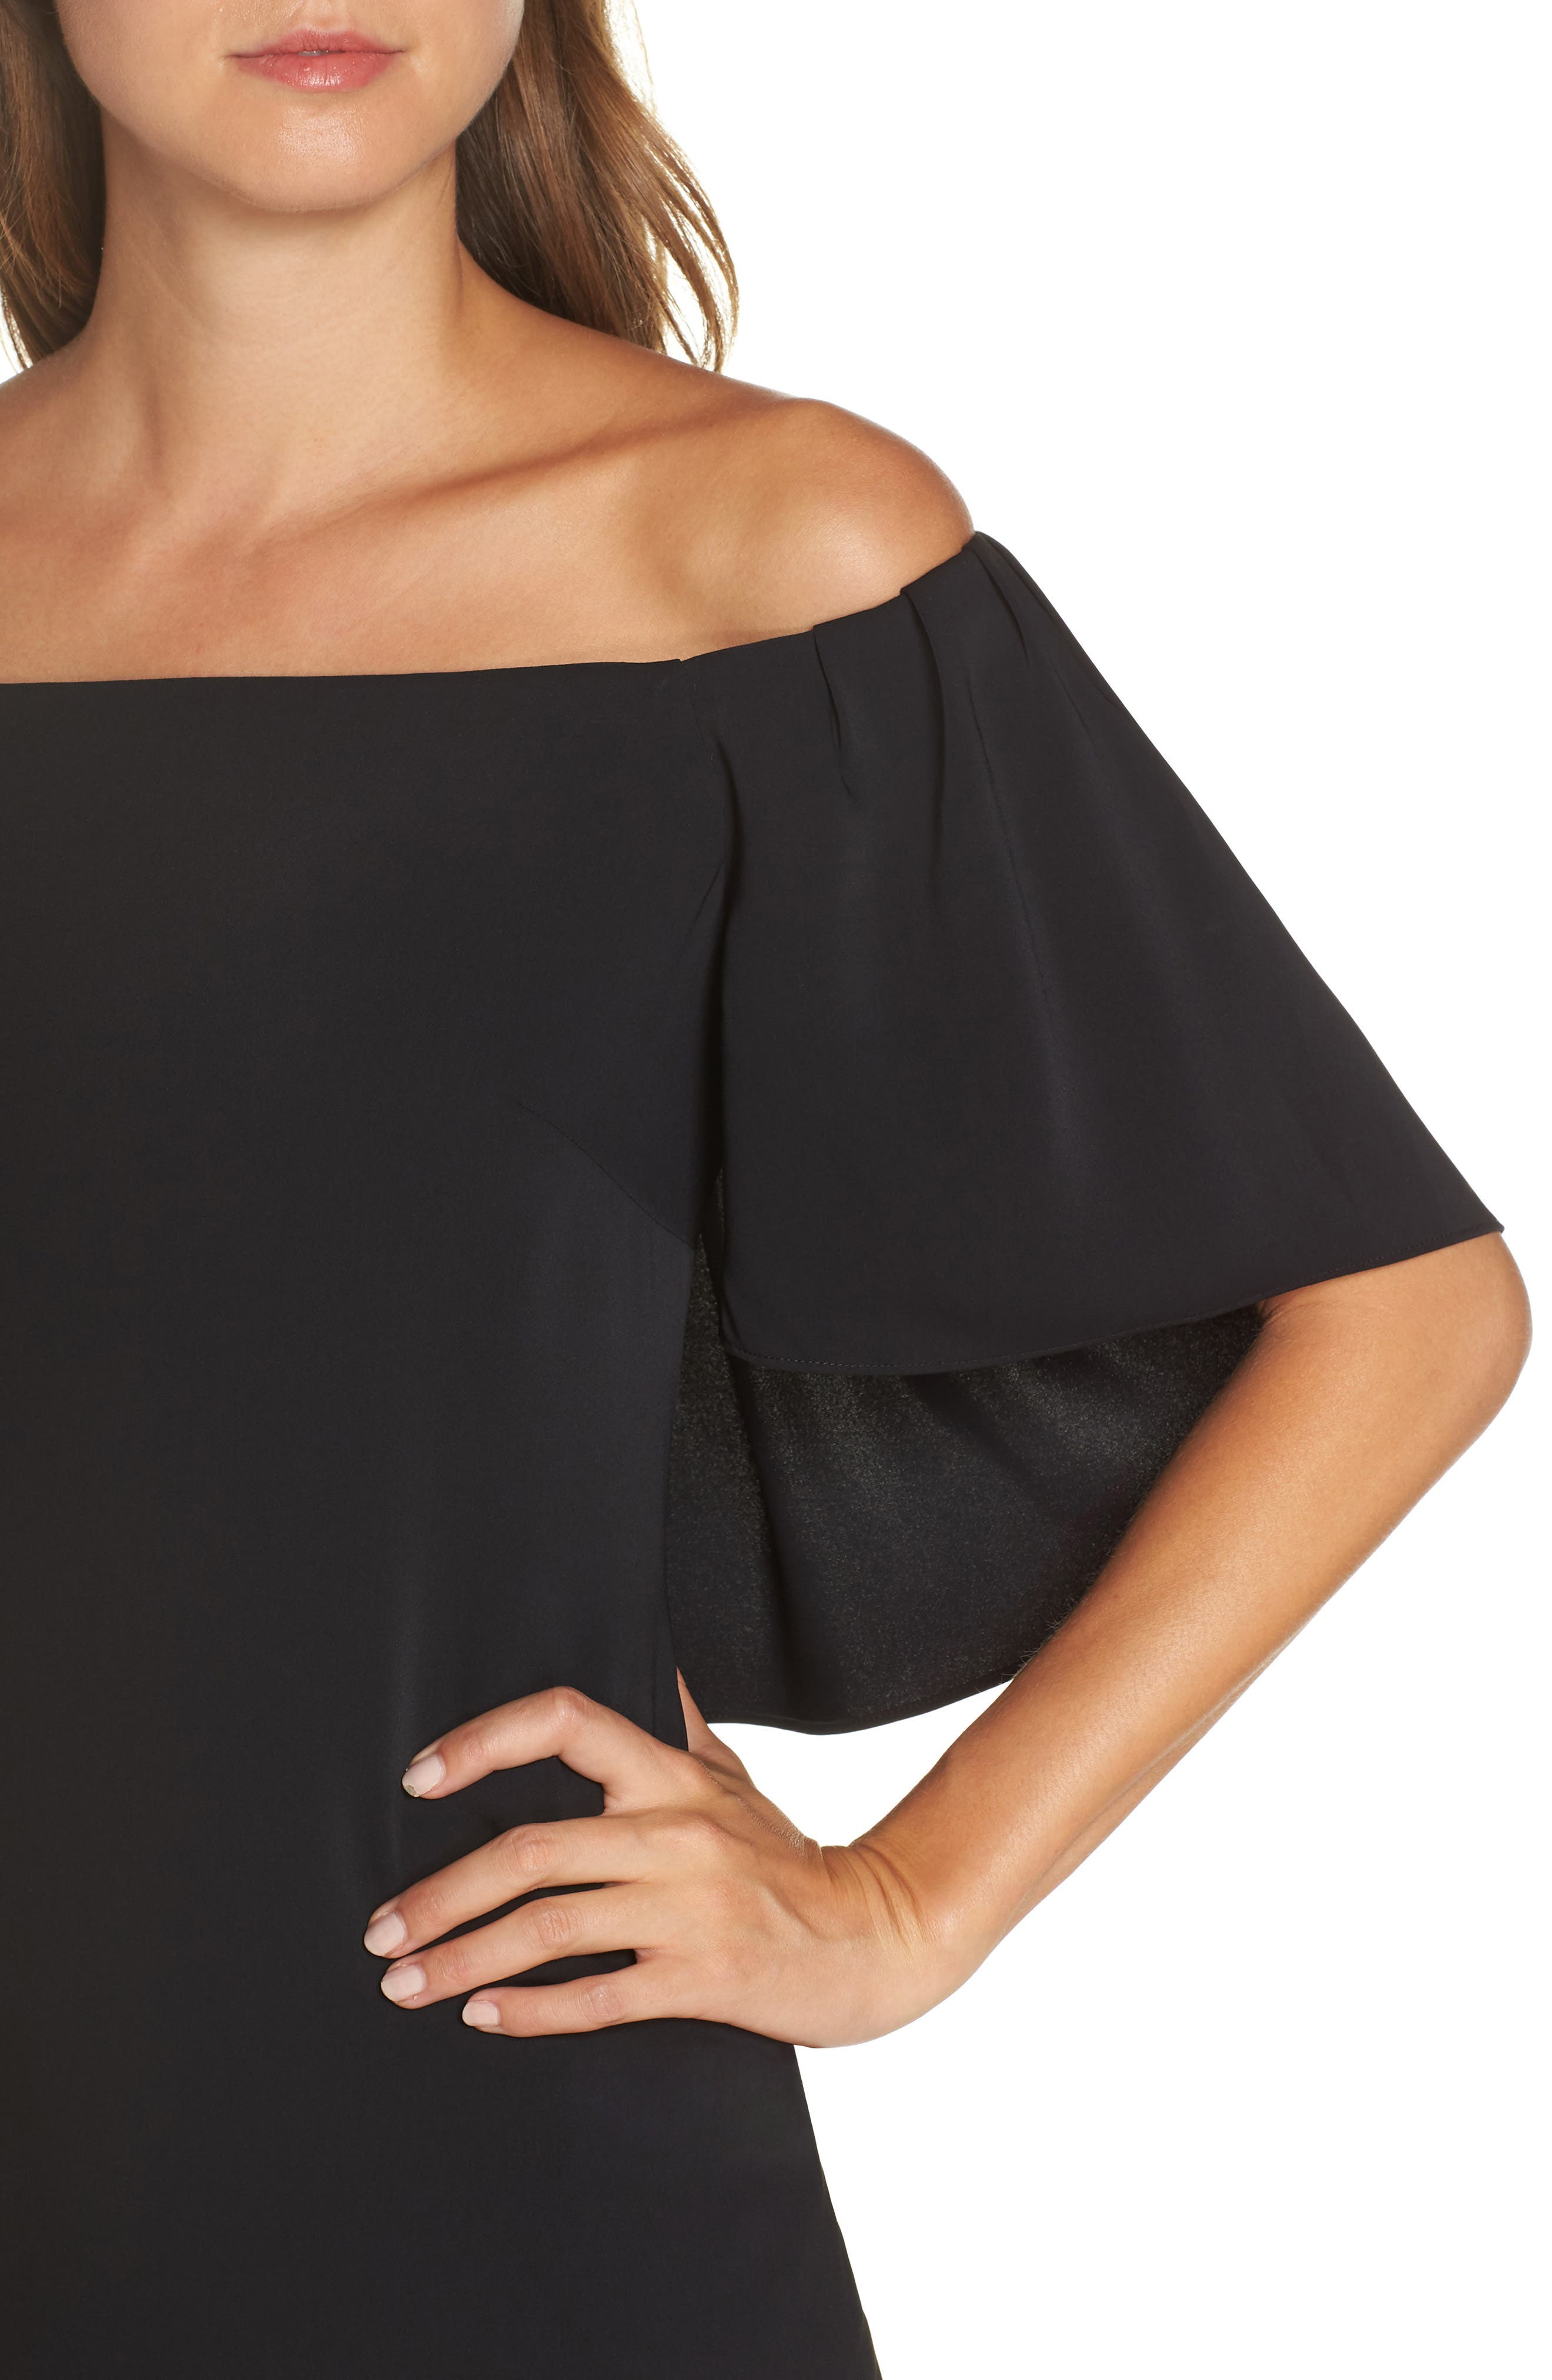 TRINA TRINA TURK,                             Zeal Off the Shoulder Dress,                             Alternate thumbnail 4, color,                             001